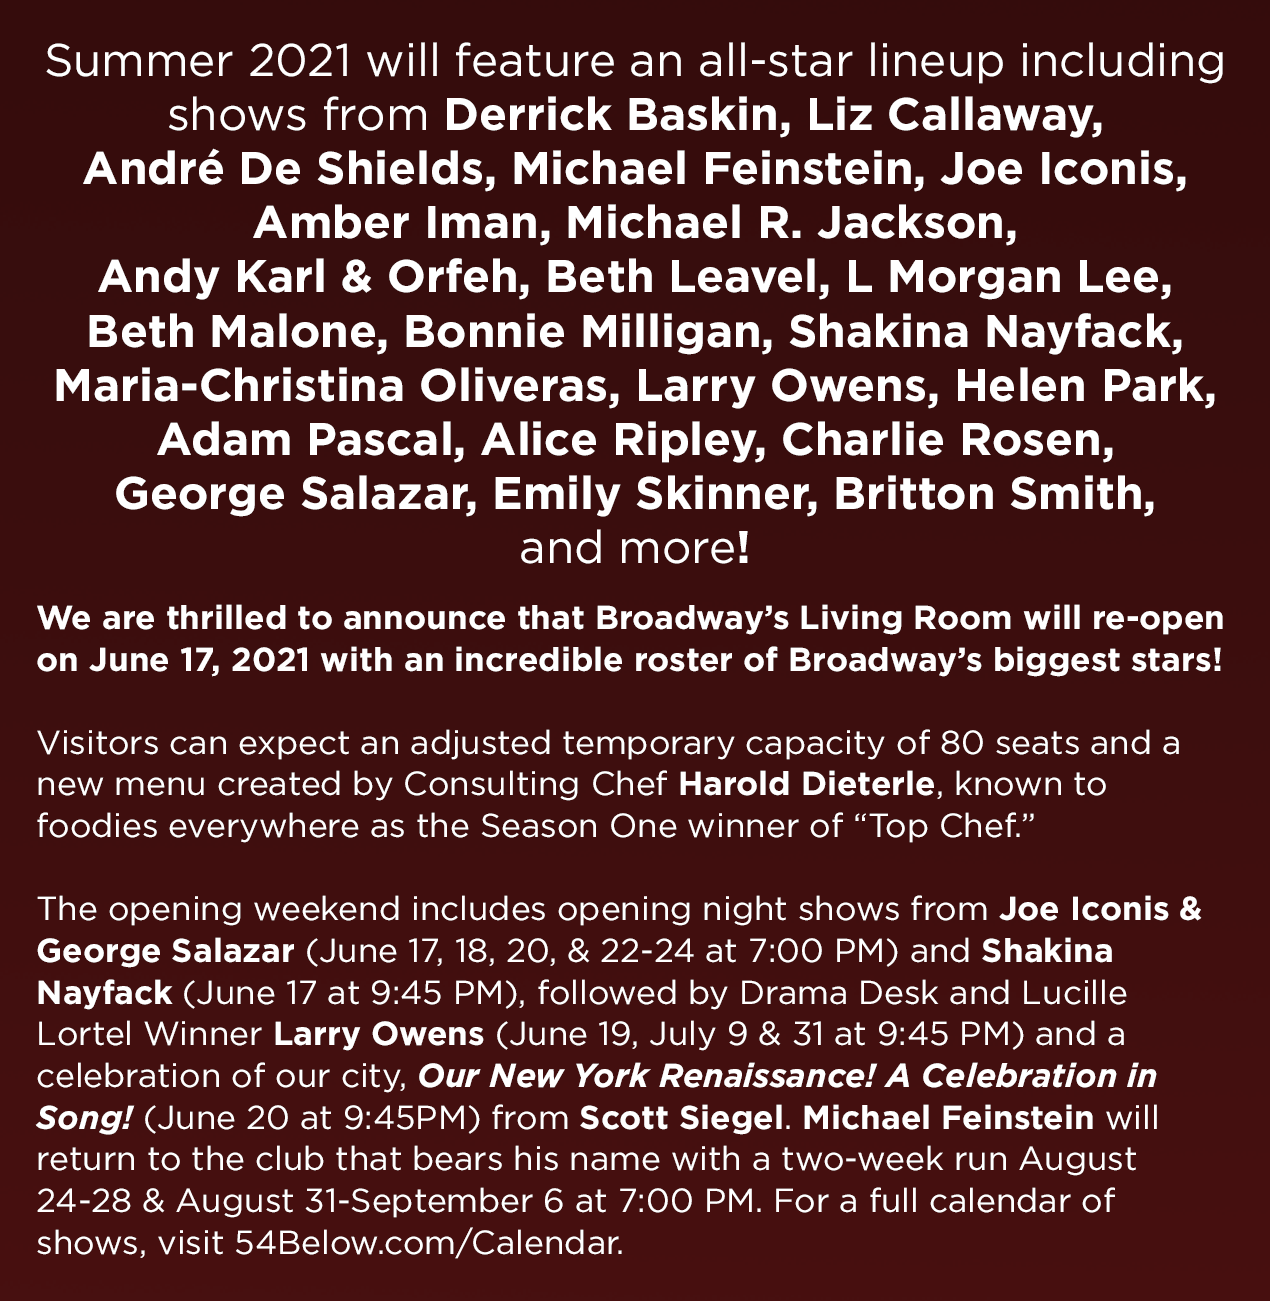 """Summer 2021 will feature an all-star lineup including shows from Derrick Baskin, Liz Callaway, André De Shields, Michael Feinstein, Joe Iconis, Amber Iman, Michael R. Jackson, Andy Karl & Orfeh, Beth Leavel, L Morgan Lee, Beth Malone, Bonnie Milligan, Shakina Nayfack, Maria-Christina Oliveras, Larry Owens, Helen Park, Adam Pascal, Alice Ripley, Charlie Rosen, George Salazar, Emily Skinner, Britton Smith, and more! We are thrilled to announce that Broadway's Living Room will re-open on June 17, 2021 with an incredible roster of Broadway's biggest stars! Visitors can expect an adjusted temporary capacity of 80 seats and a new menu created by Consulting Chef Harold Dieterle, known to foodies everywhere as the Season One winner of """"Top Chef."""" The opening weekend includes opening night shows from Joe Iconis & George Salazar (June 17, 18, 20, & 22-24 at 7:00 PM) and Shakina Nayfack (June 17 at 9:45 PM), followed by Drama Desk and Lucille Lortel Winner Larry Owens (June 19, July 9 & 31 at 9:45 PM) and a celebration of our city, Our New York Renaissance! A Celebration in Song! (June 20 at 9:45PM) from Scott Siegel. Michael Feinstein will return to the club that bears his name with a two-week run August 24-28 & August 31-September 6 at 7:00 PM. For a full calendar of shows, visit 54Below.com/Calendar."""